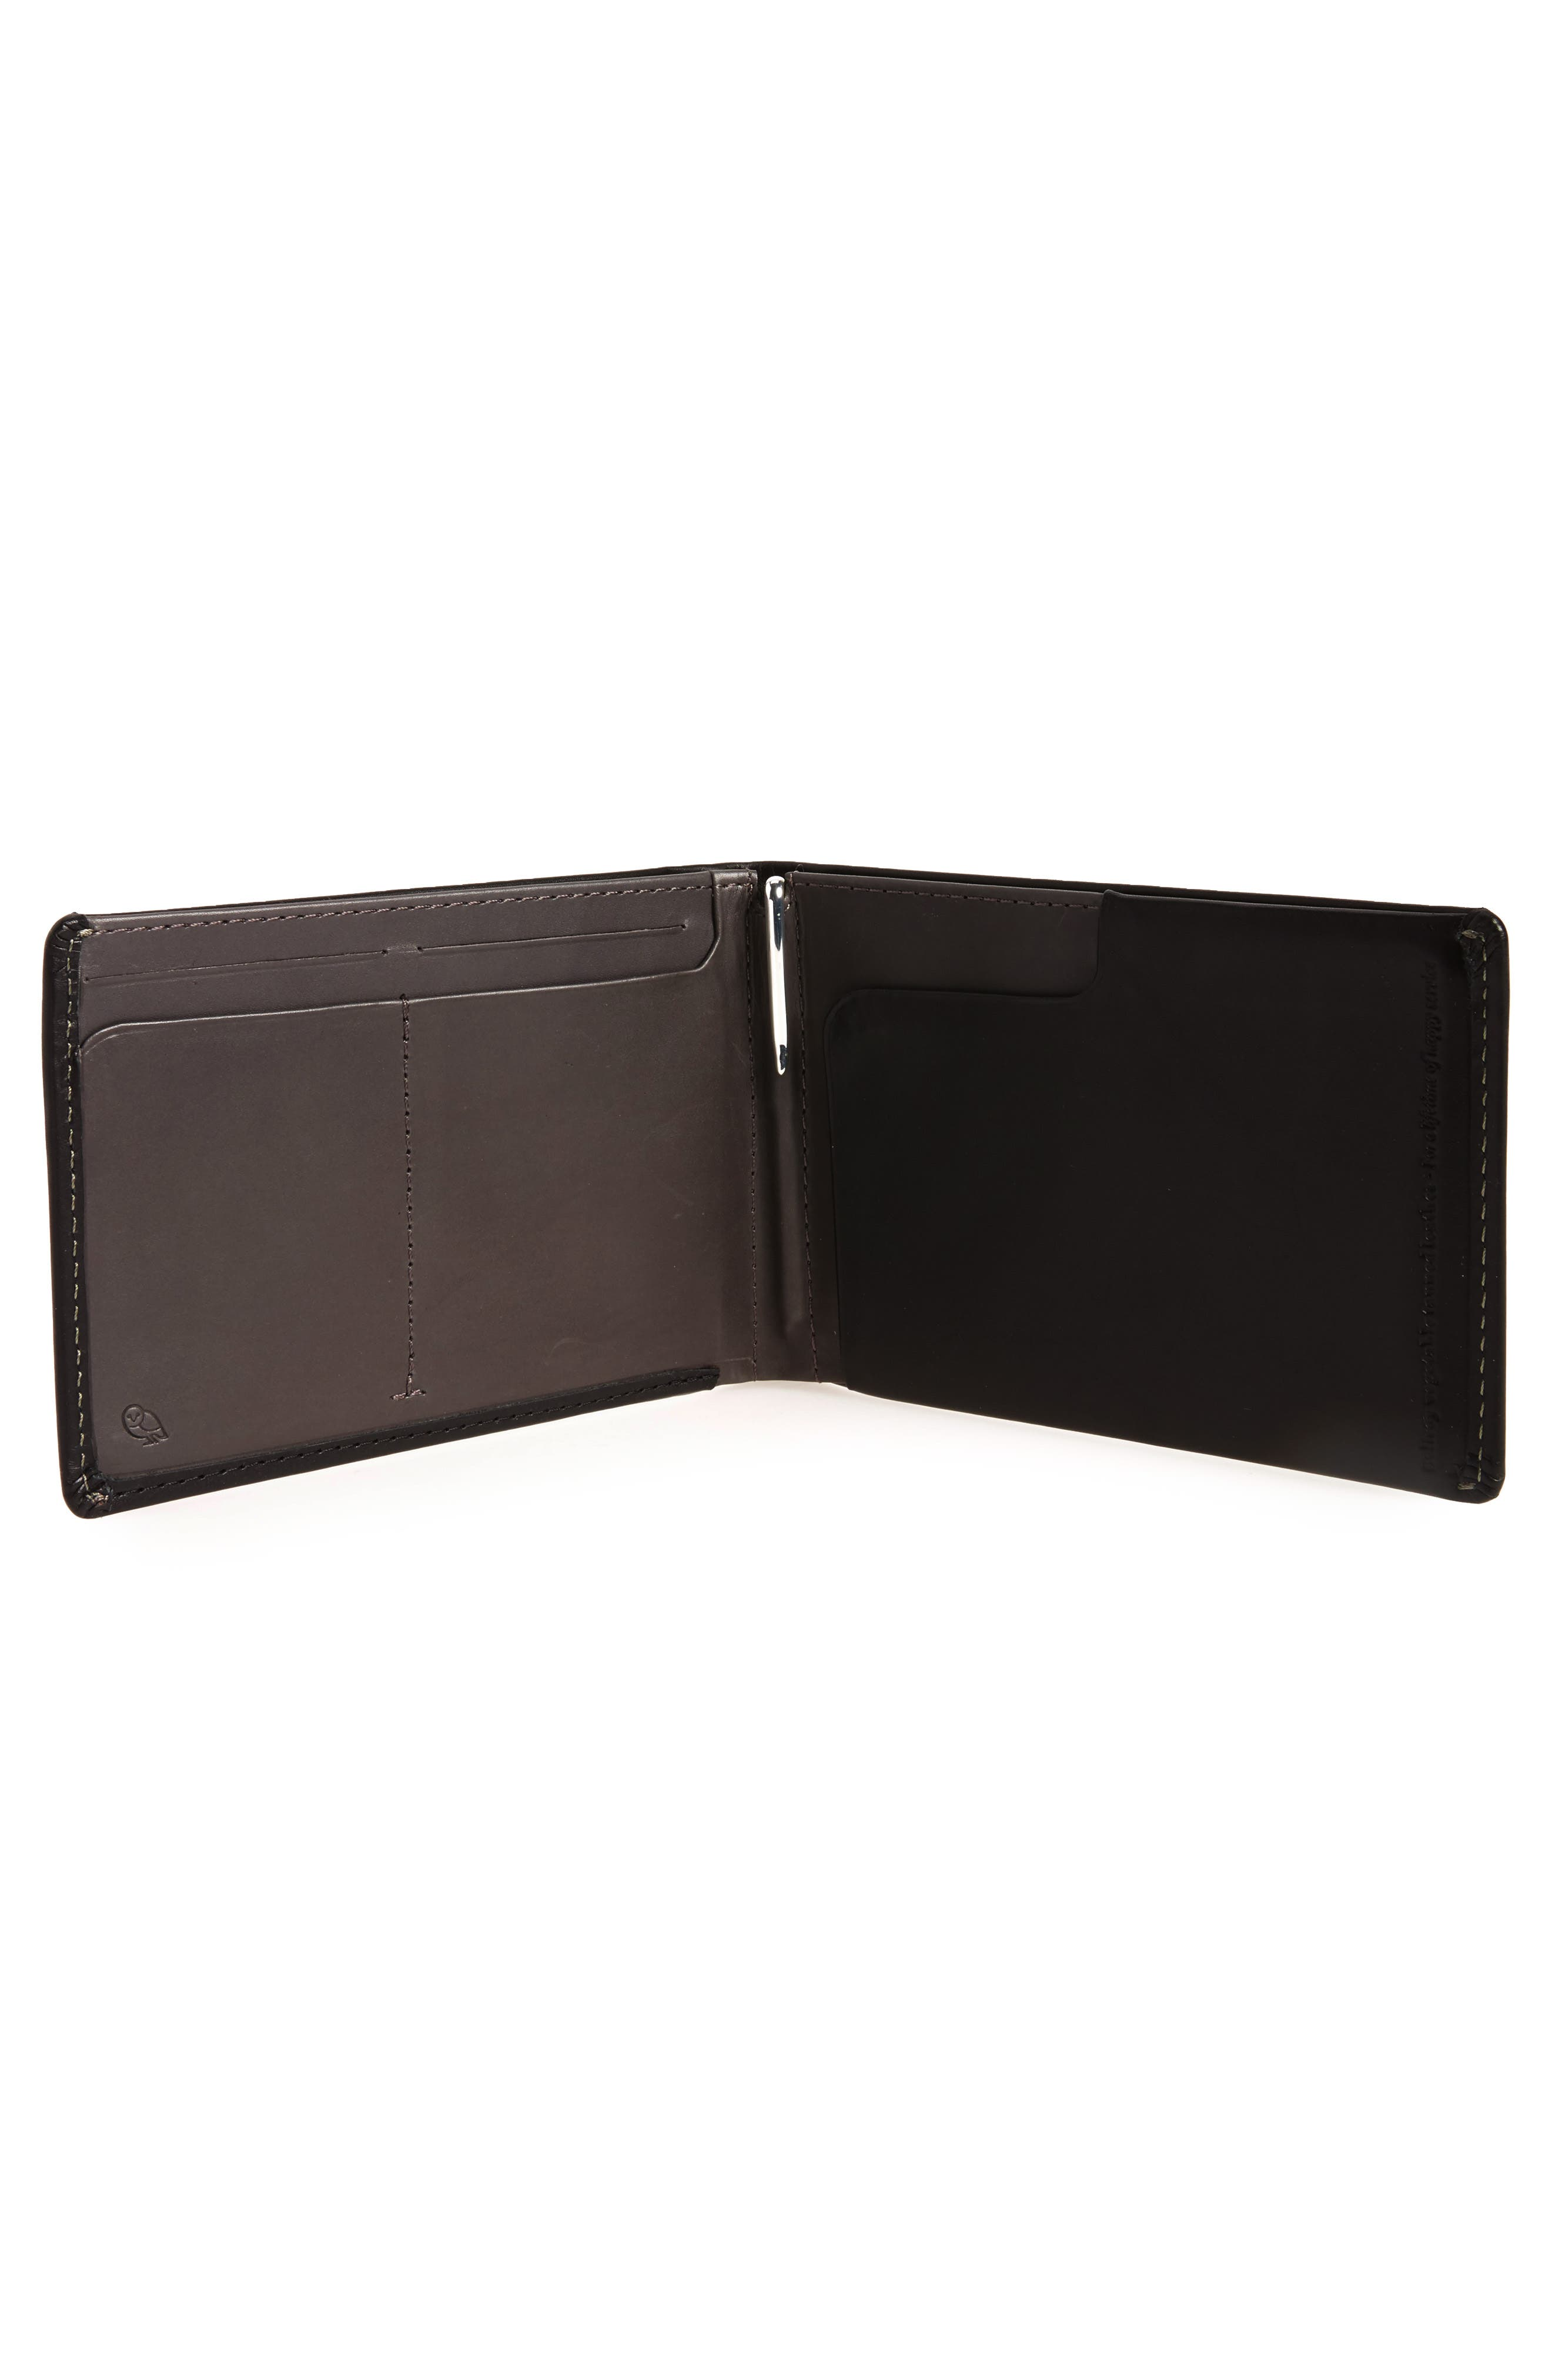 RFID Travel Wallet,                             Alternate thumbnail 2, color,                             001